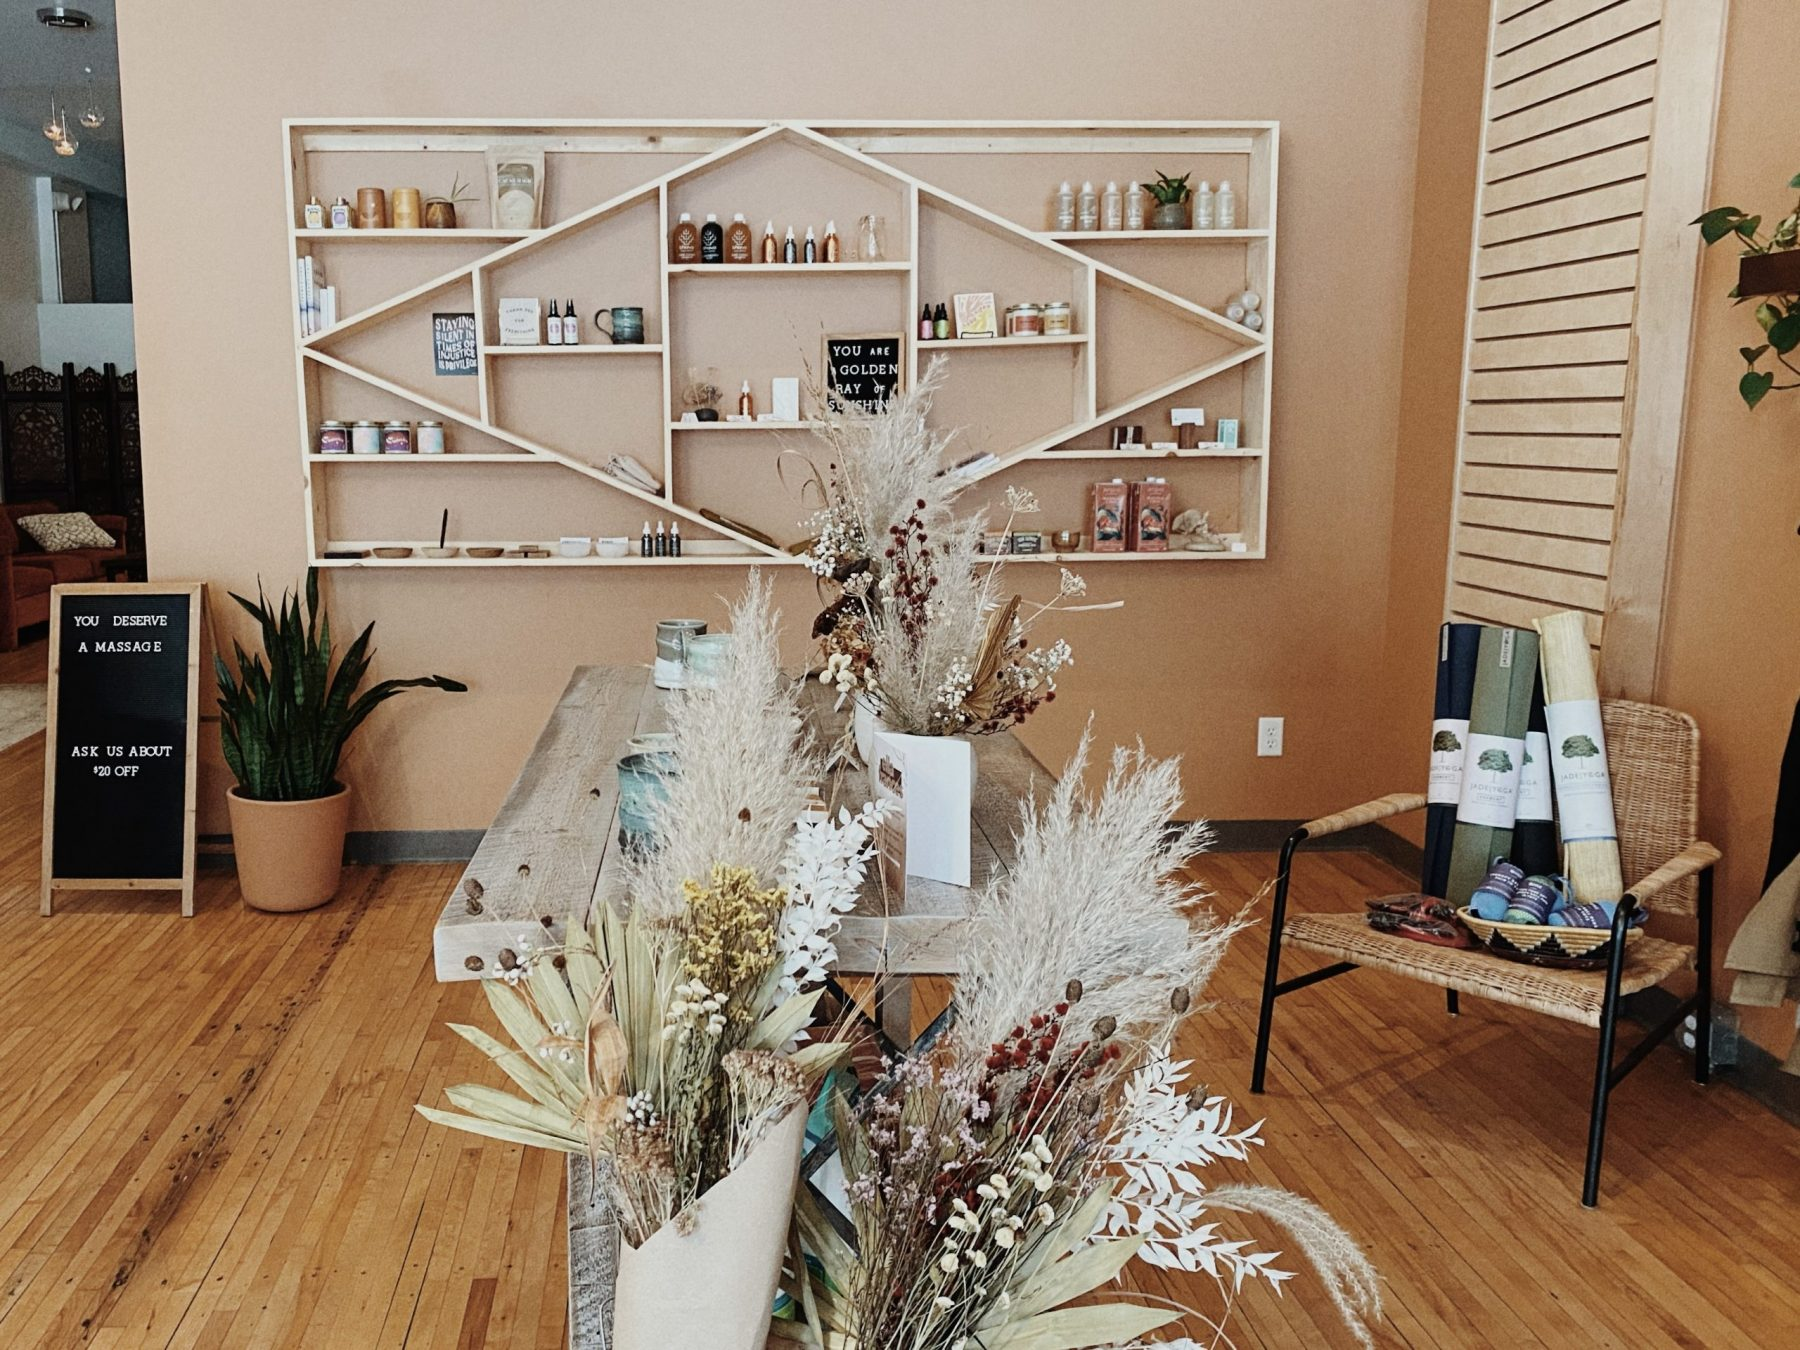 image of the Healing Elements shop